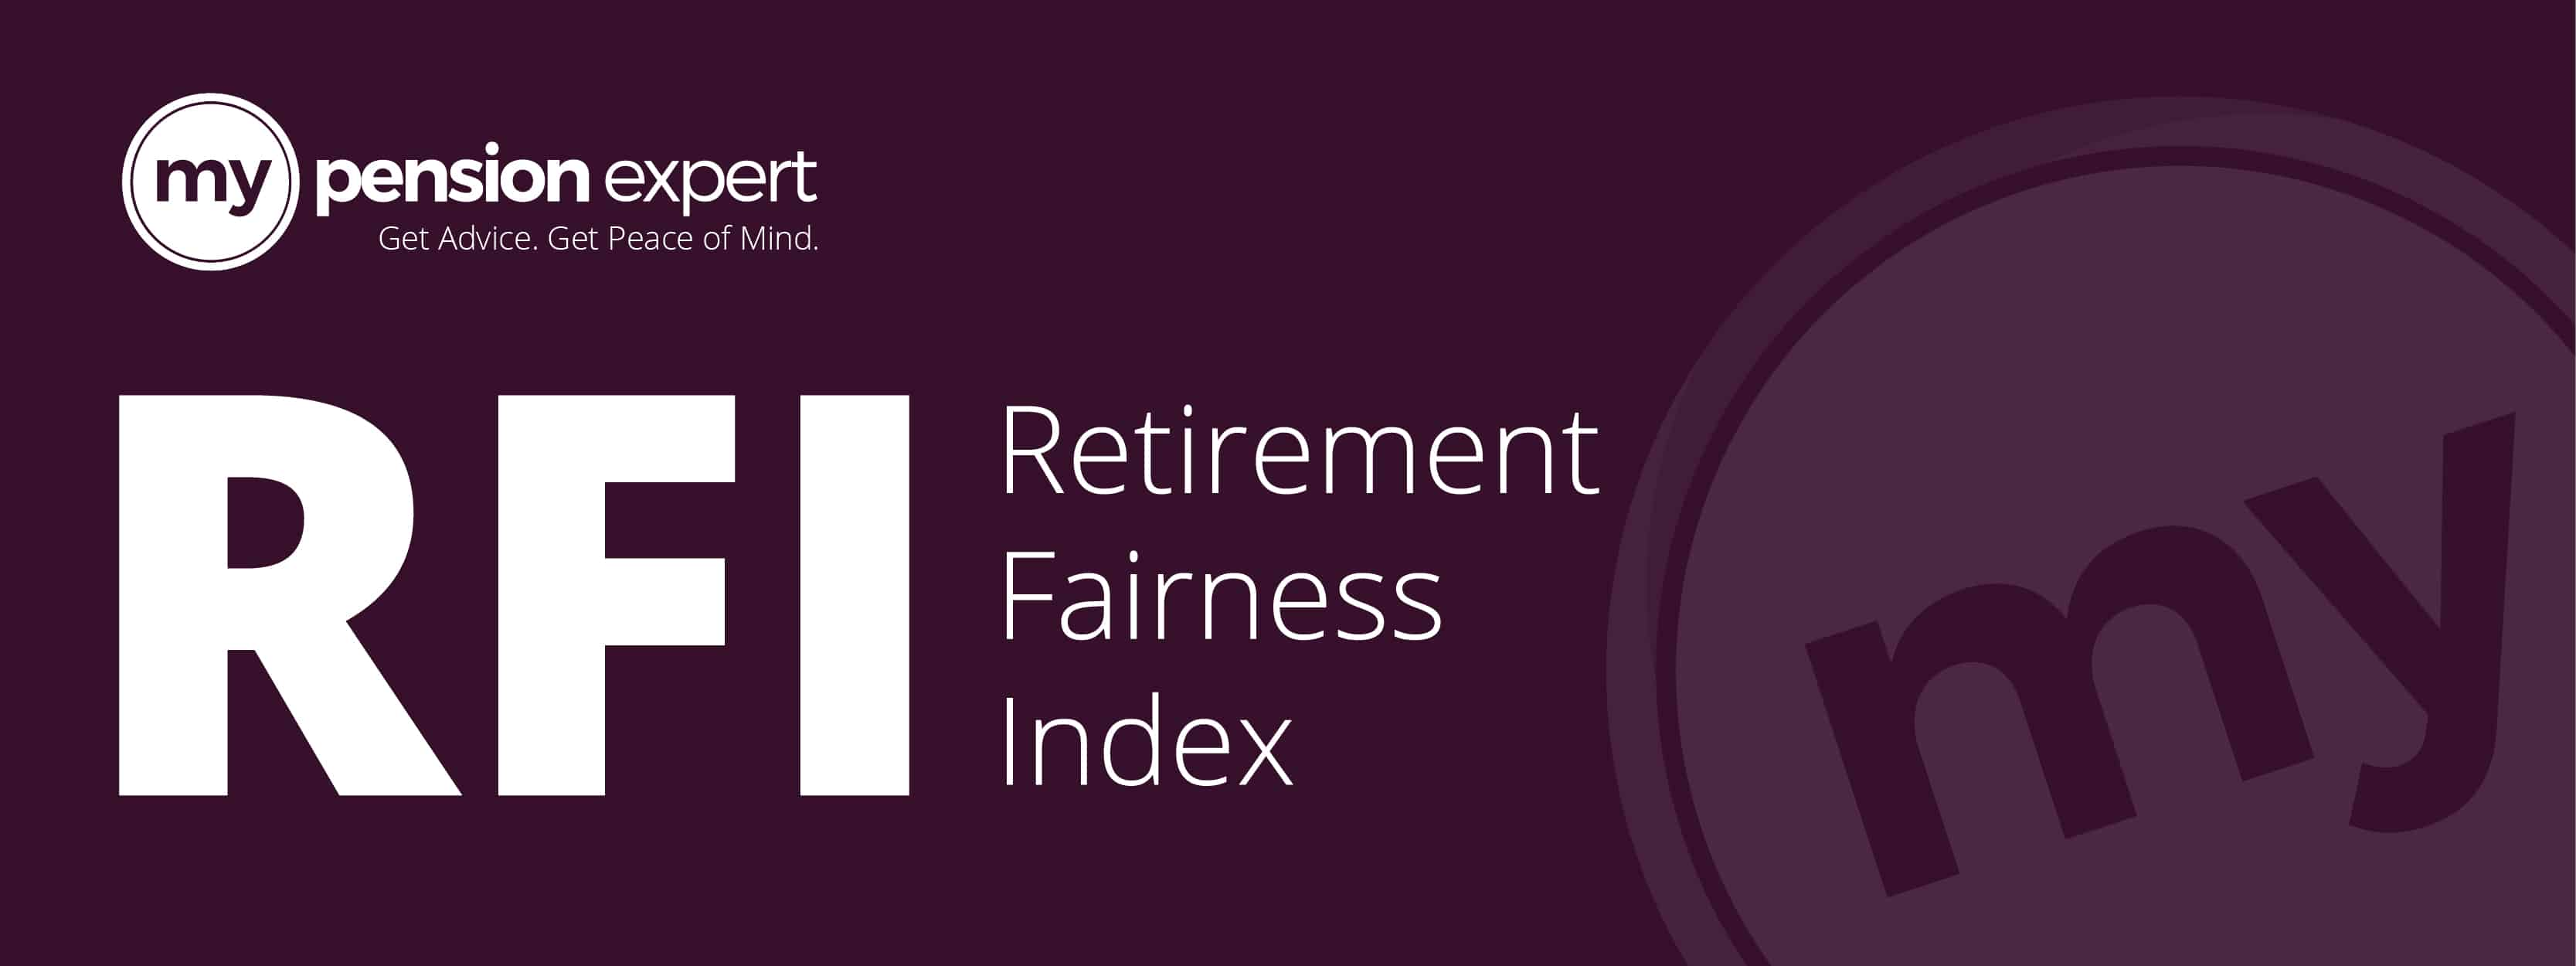 Retirement Fairness Index Banner